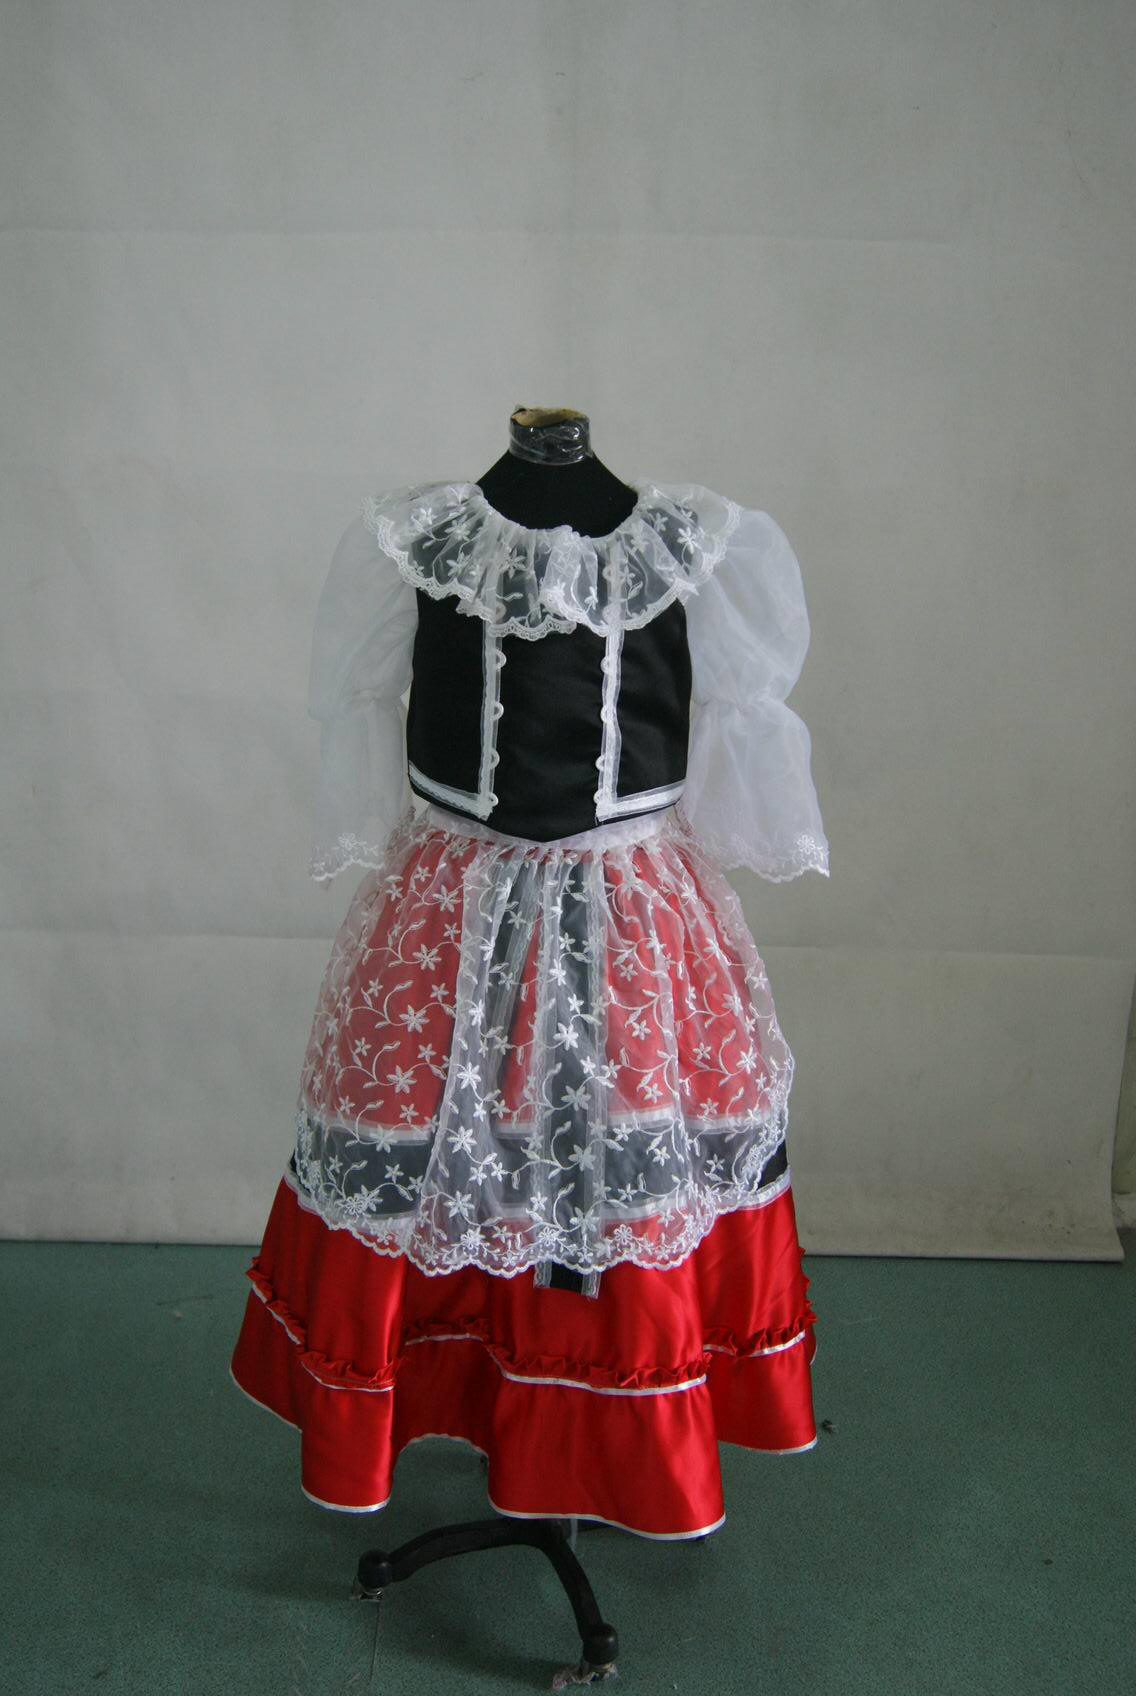 Czech outfits in red white and black